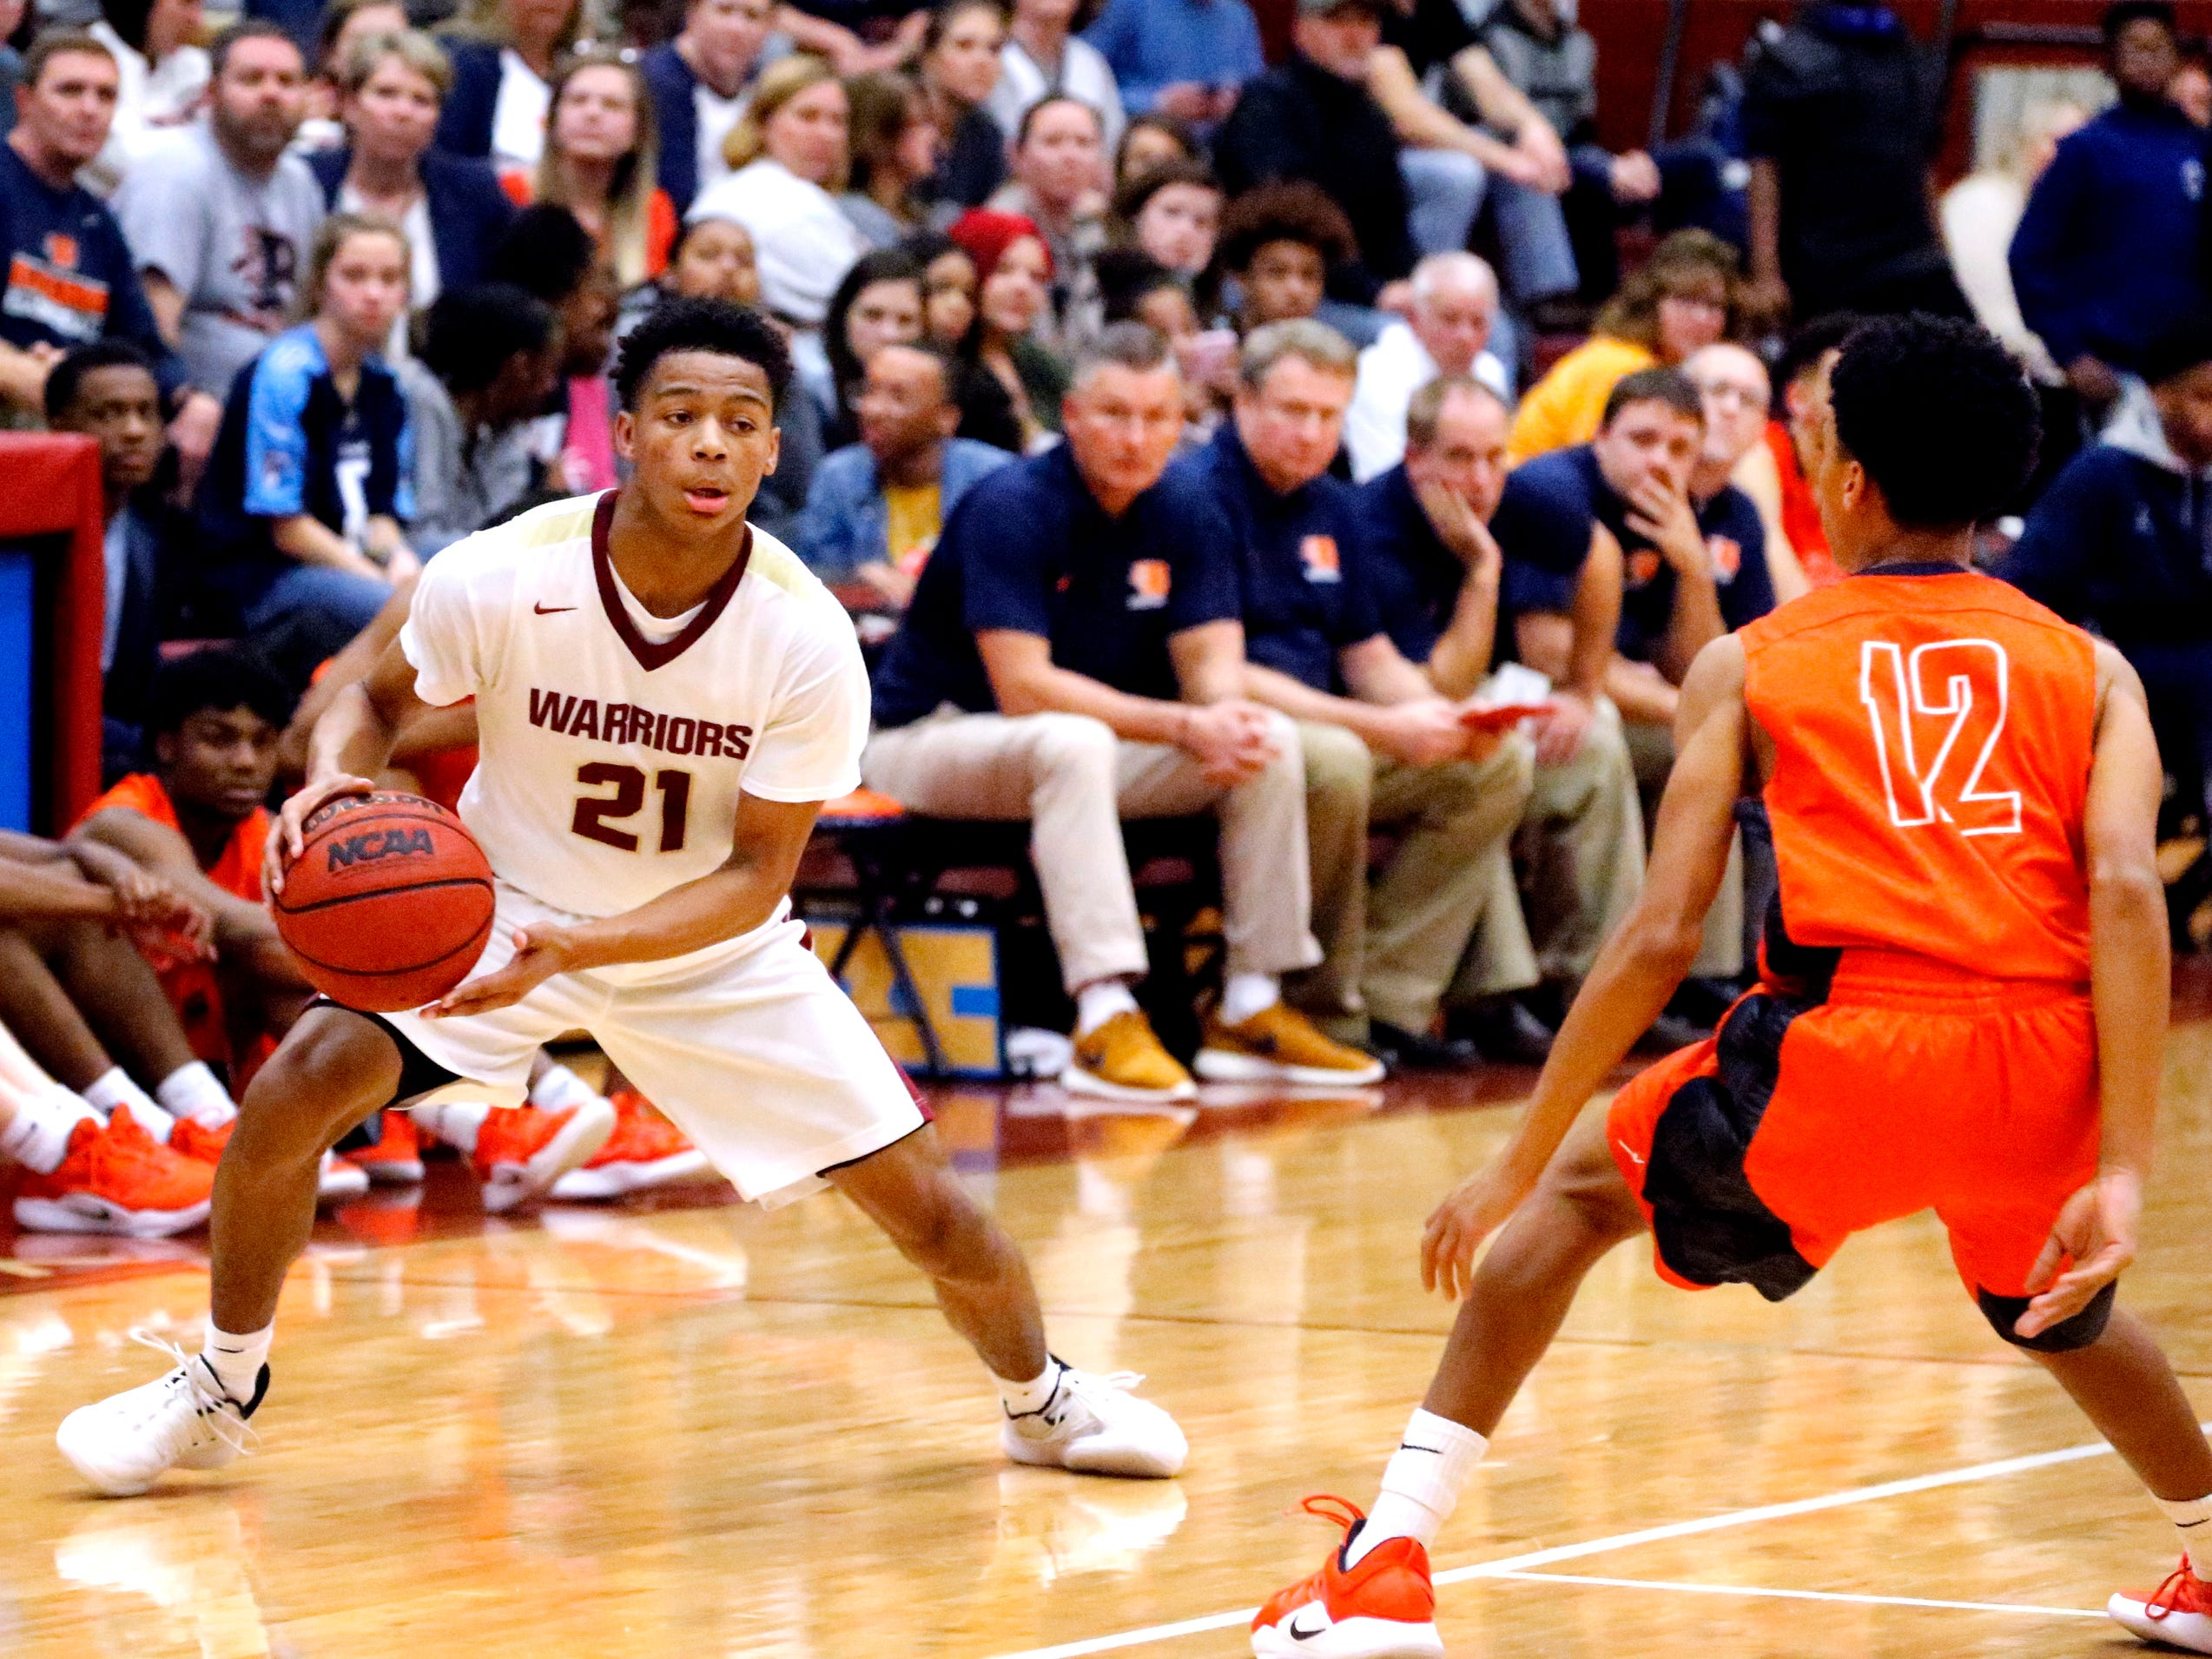 Riverdale's Rashaad Thompson (21) looks for an opening to the basket a Blackman's Mark Cooper (12) guards him on Tuesday Jan. 8, 2019.